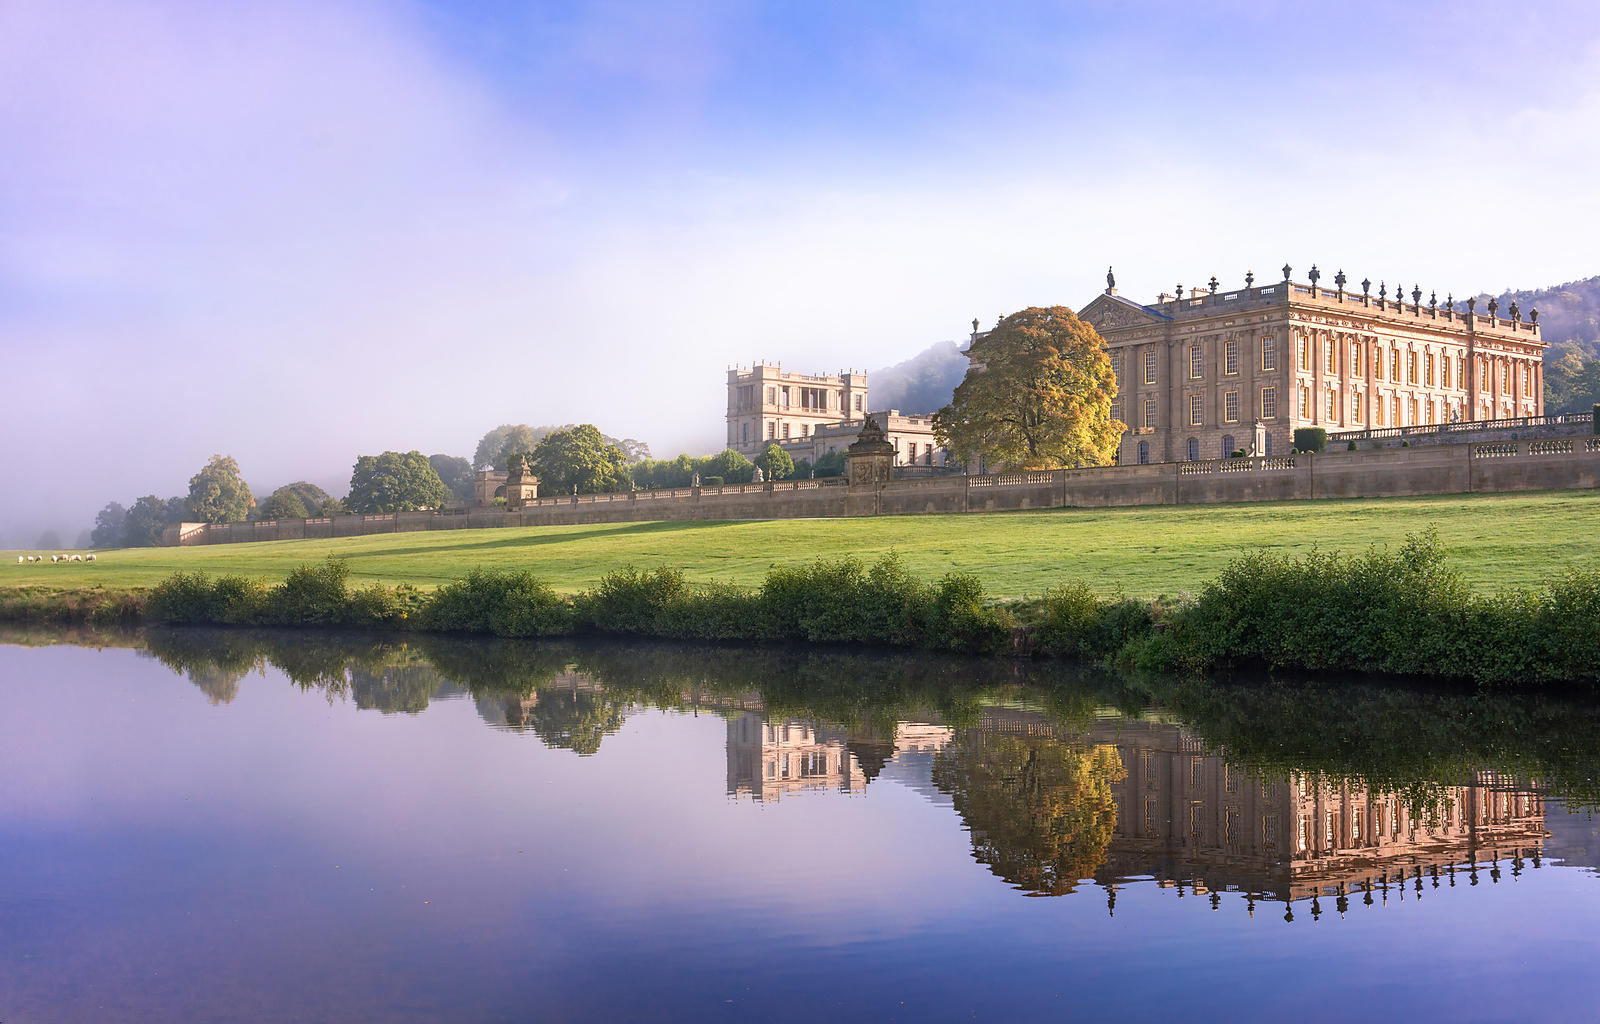 Chatsworth House in clearing September mists